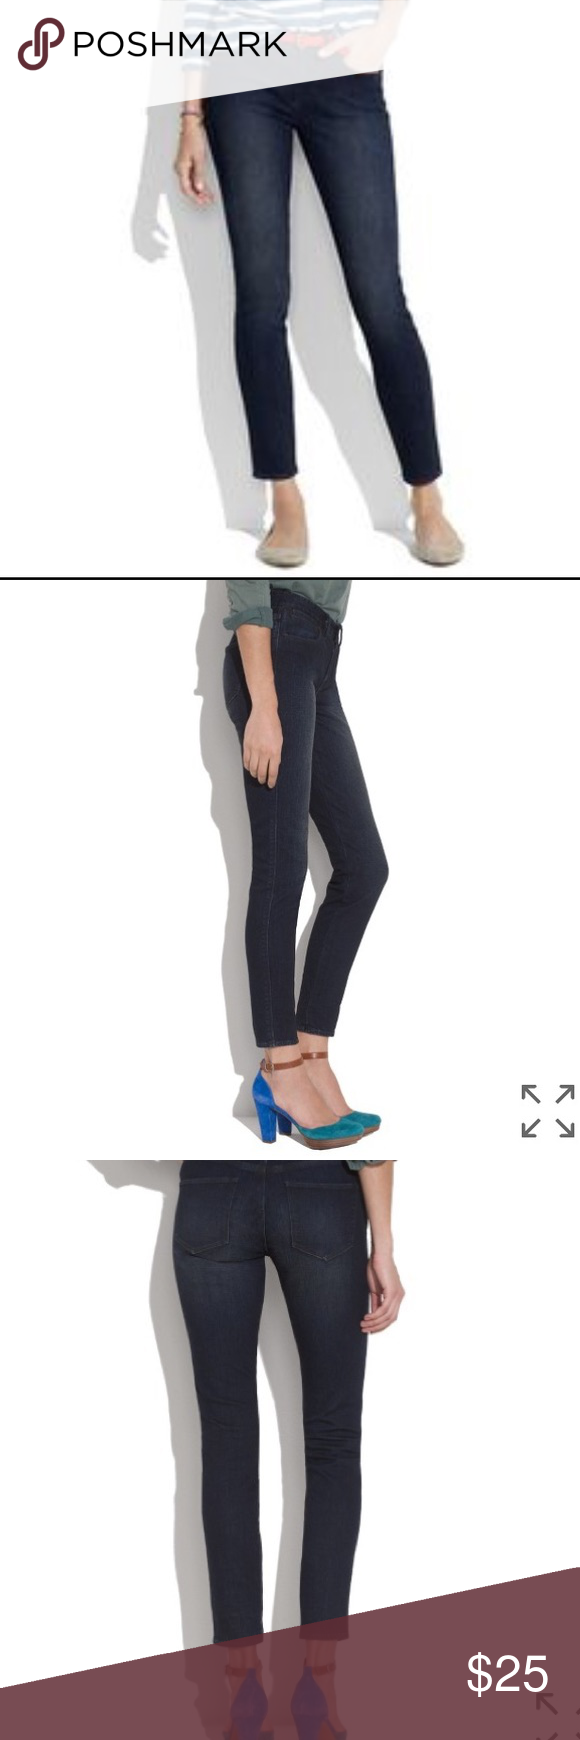 """Madewell Skinny Skinny Ankle Jeans in Azure Our superslim and superstretchy fit, flatteringly cropped at the ankle with five-pockets. Sit at hips. Fitted through hip and thigh, with a slim leg. Leg opening: 10 1/2"""". Inseam: 28 1/2"""". 98% cotton/2% spandex. Machine wash. Import. Worn only once. From sample sale so it's missing care tag and has writing on the inside (pic). Madewell Jeans Ankle & Cropped"""